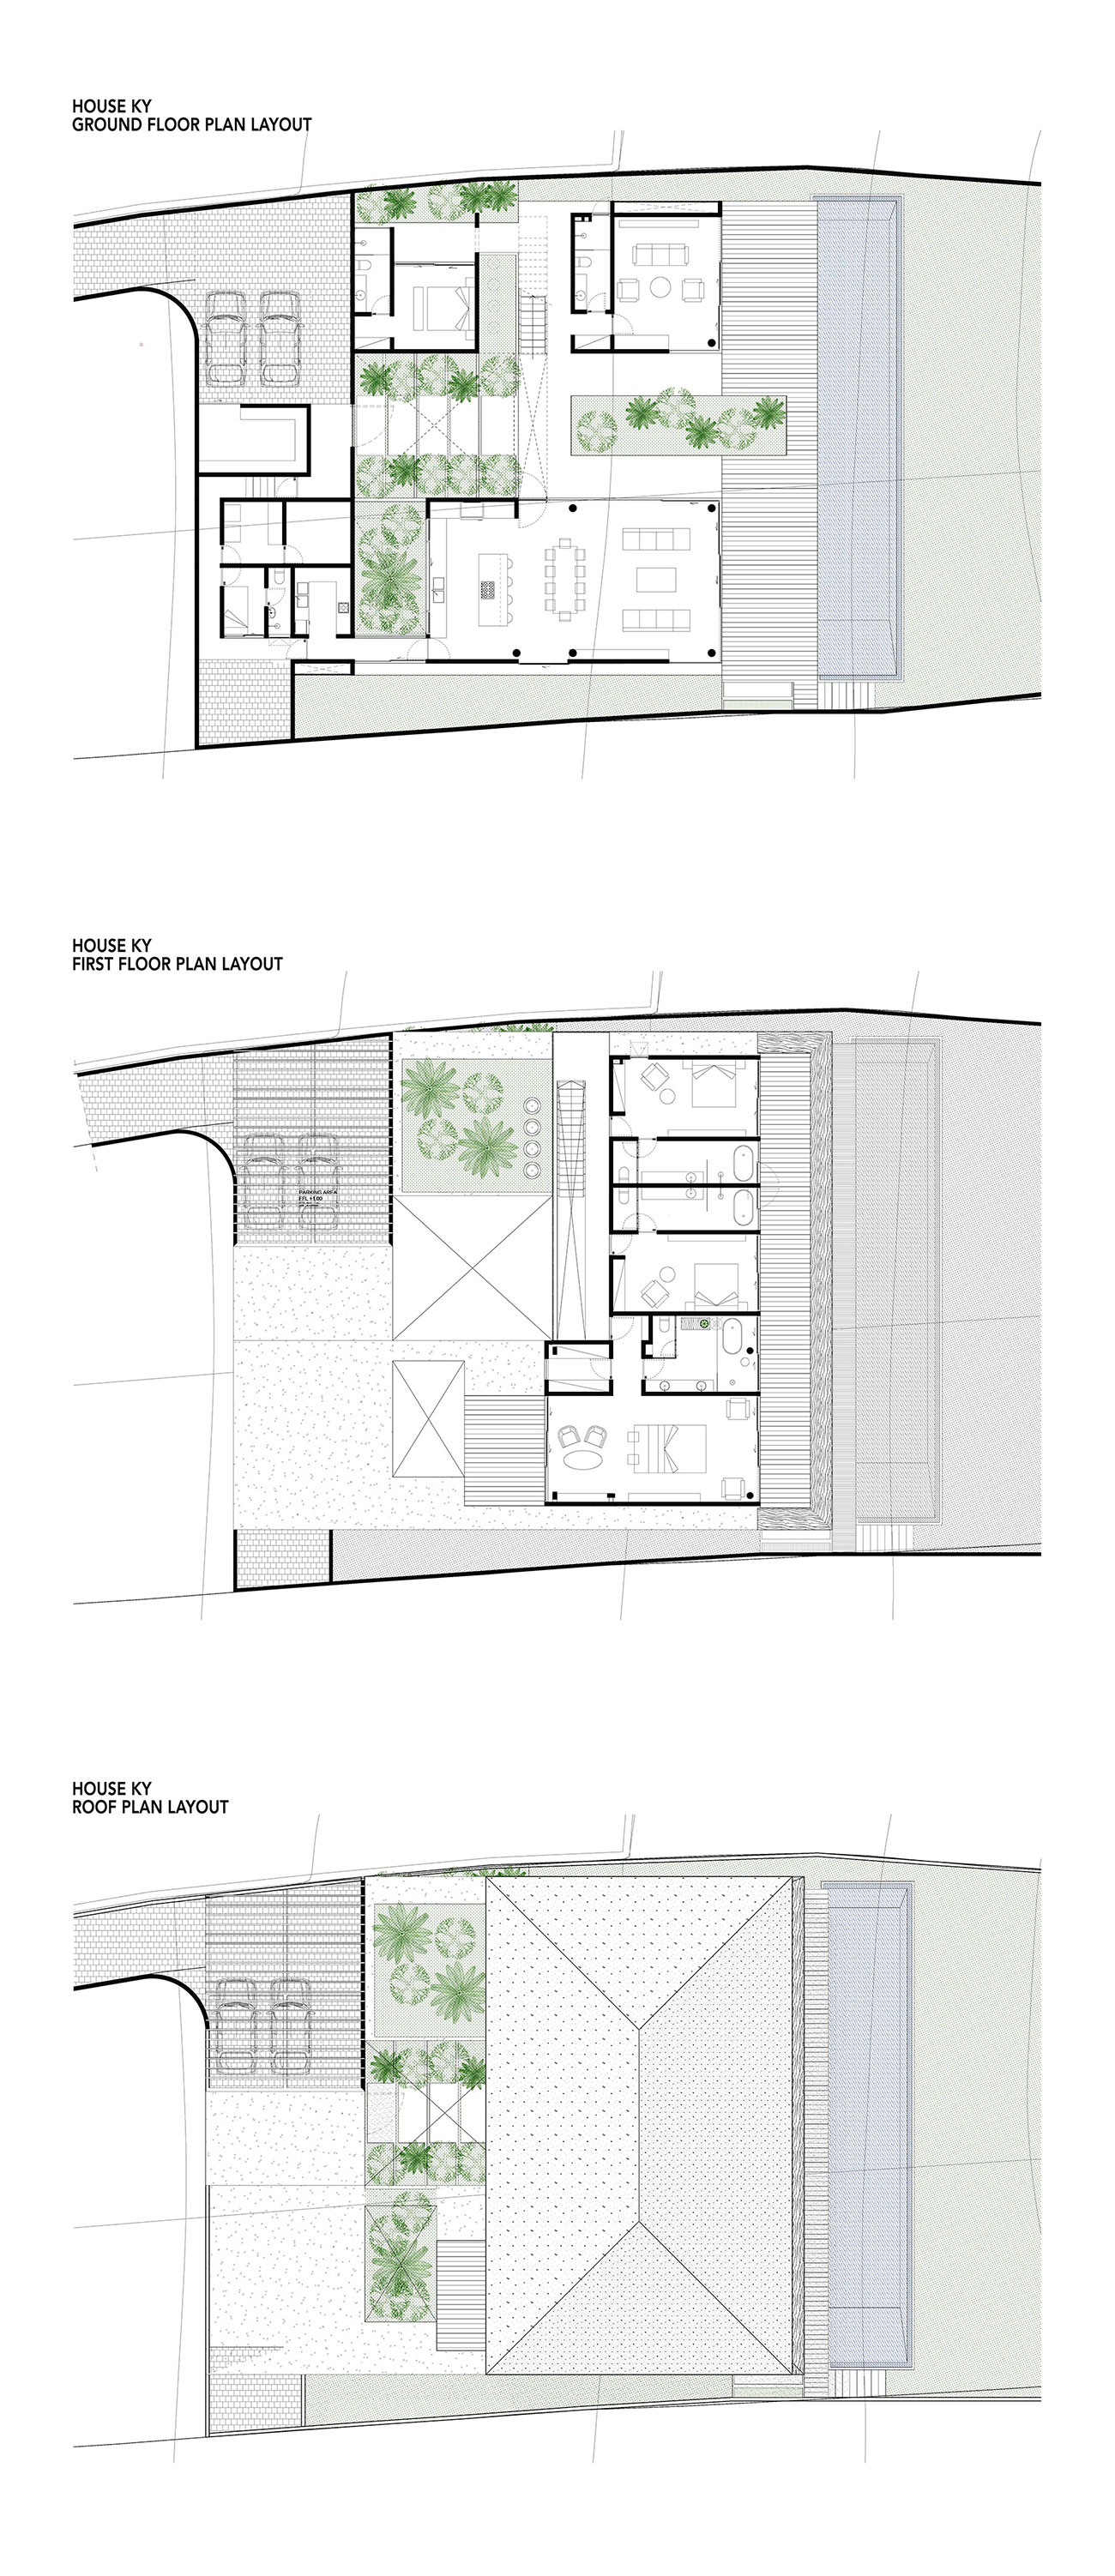 HOUSE-KY-GENERAL-LAYOUT